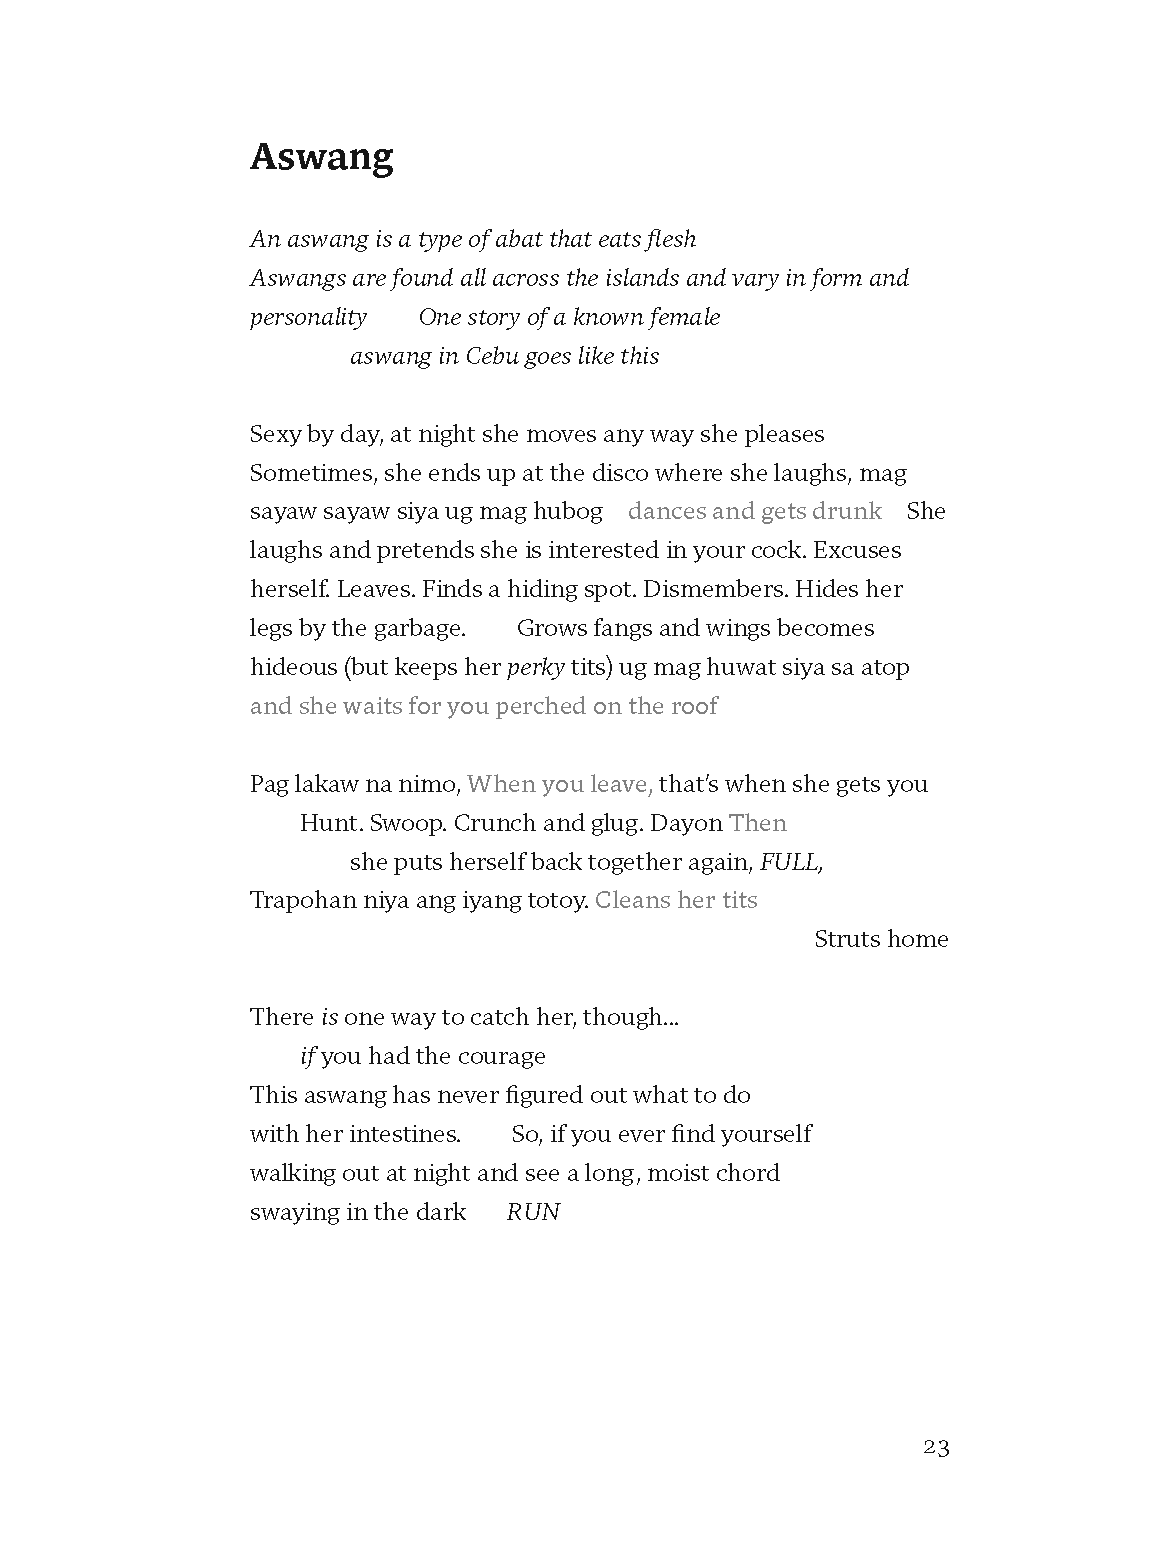 """Therese Estacion's poem, """"Aswang,"""" excerpted from Phantompains"""